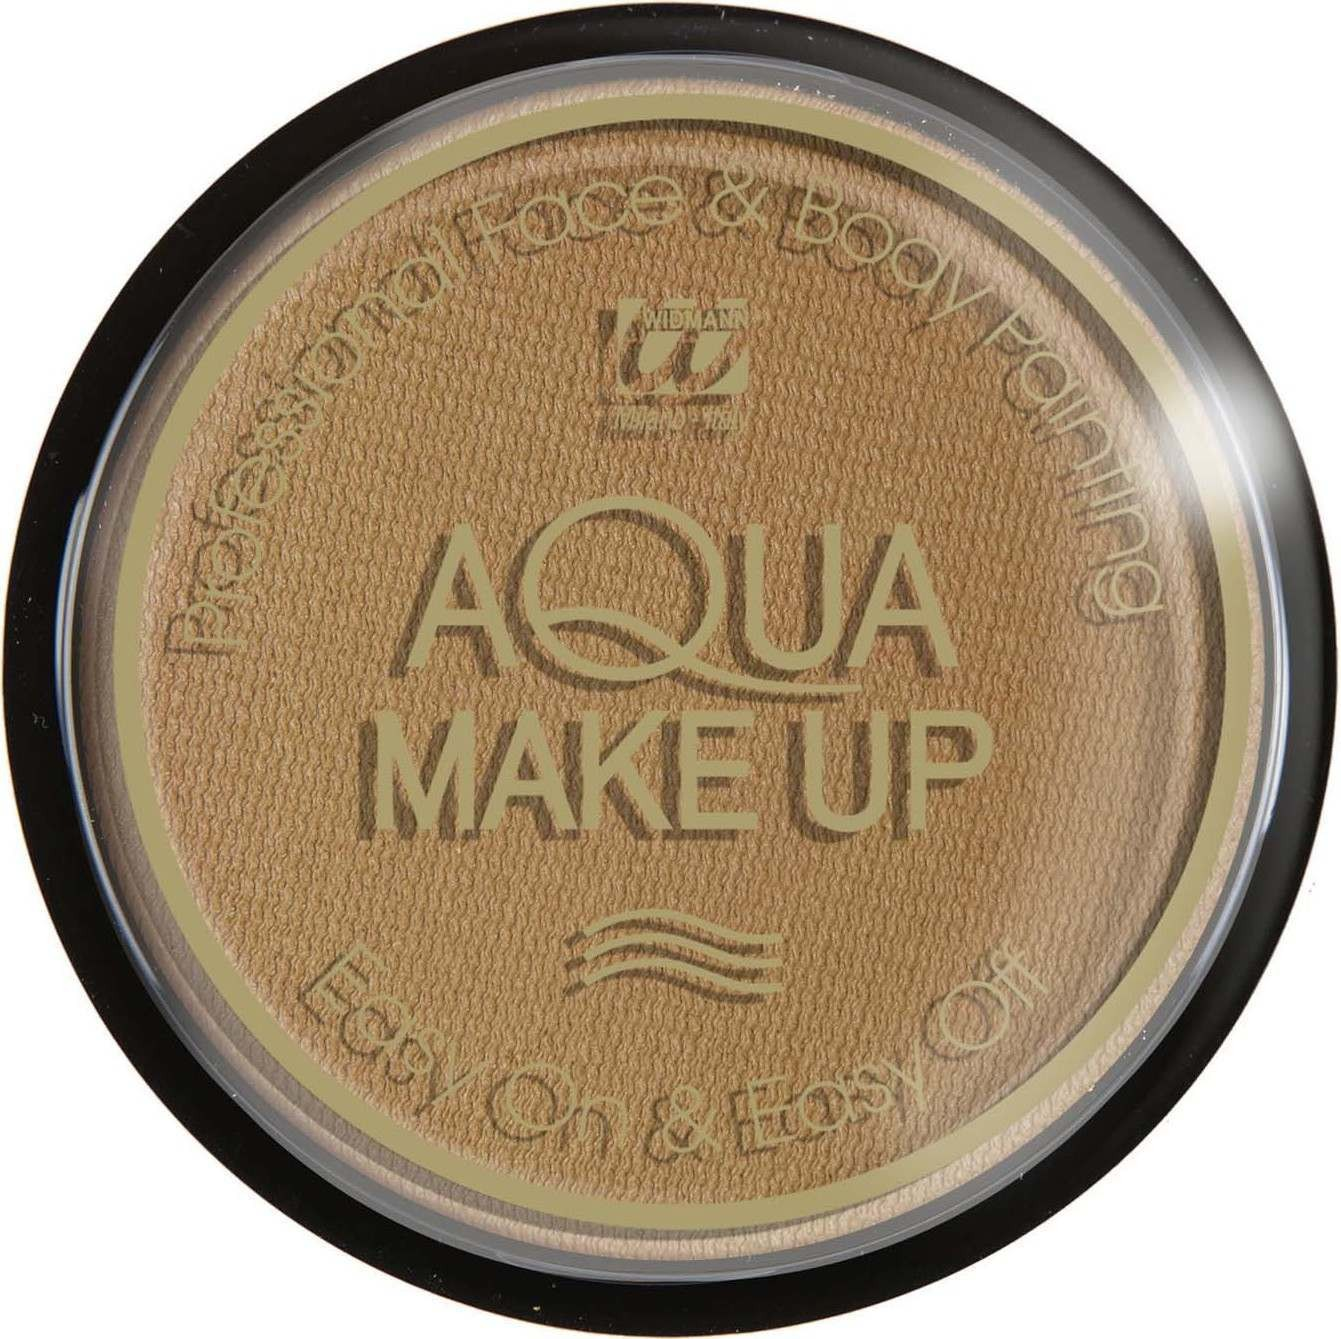 Aqua Makeup 15G - Dark Beige Makeup - (Beige)